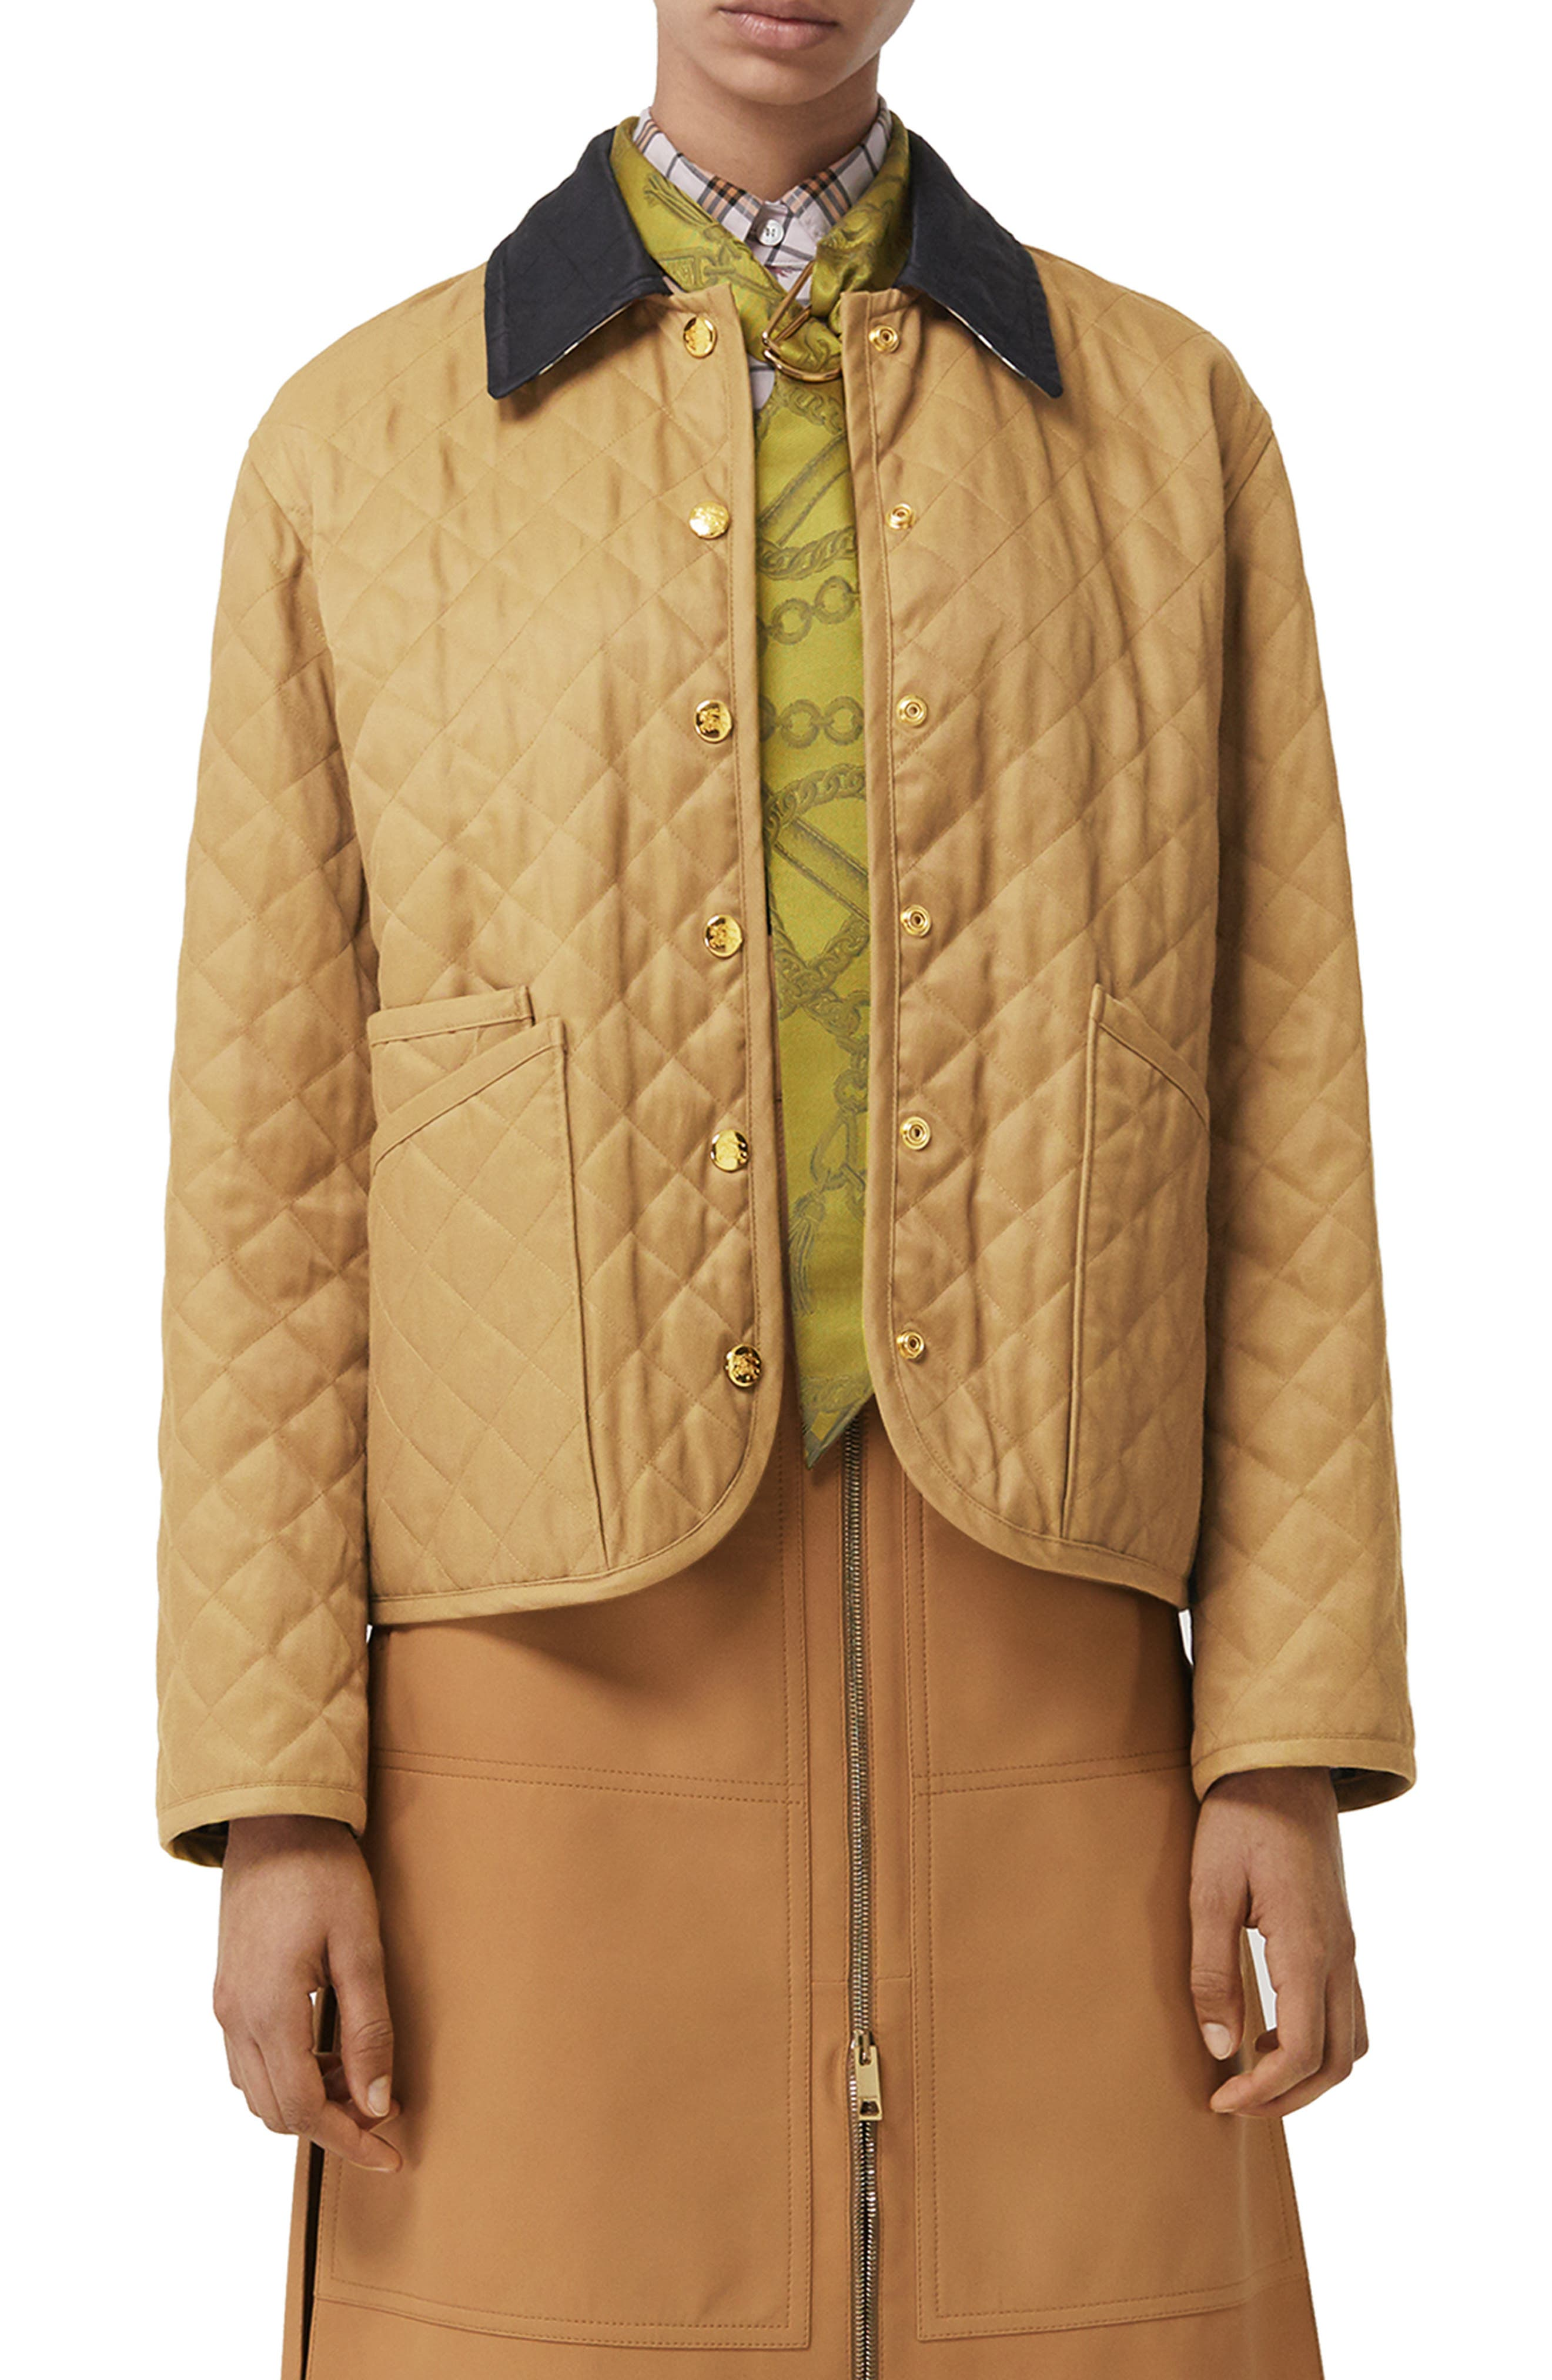 Dranefeld Quilted Jacket,                             Main thumbnail 1, color,                             CAMEL